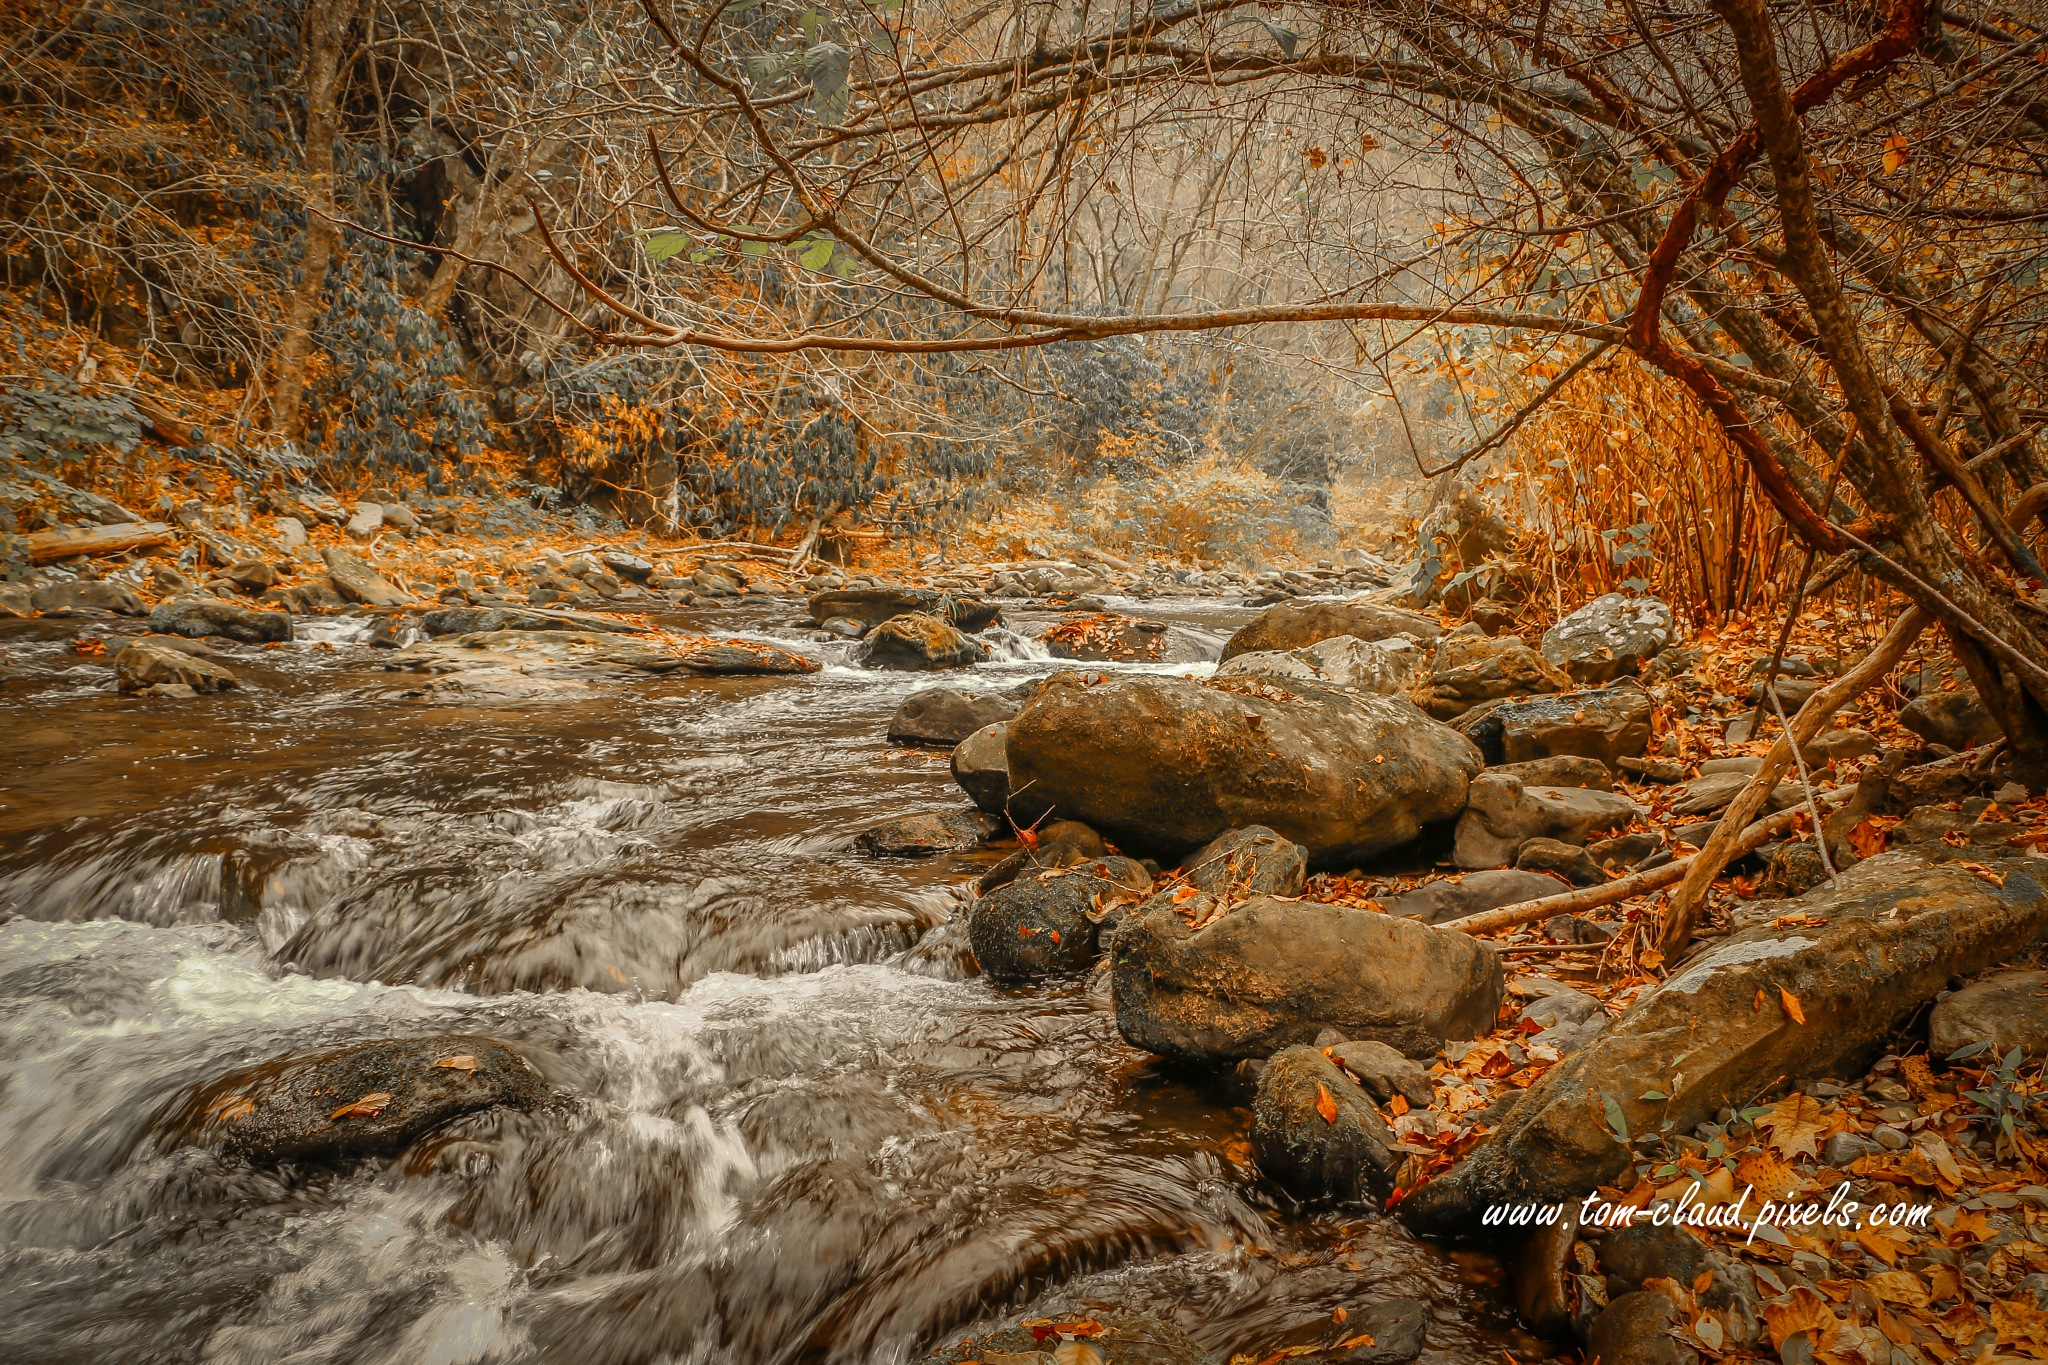 Mountain Stream with Tree Overhang #2 by TClaud